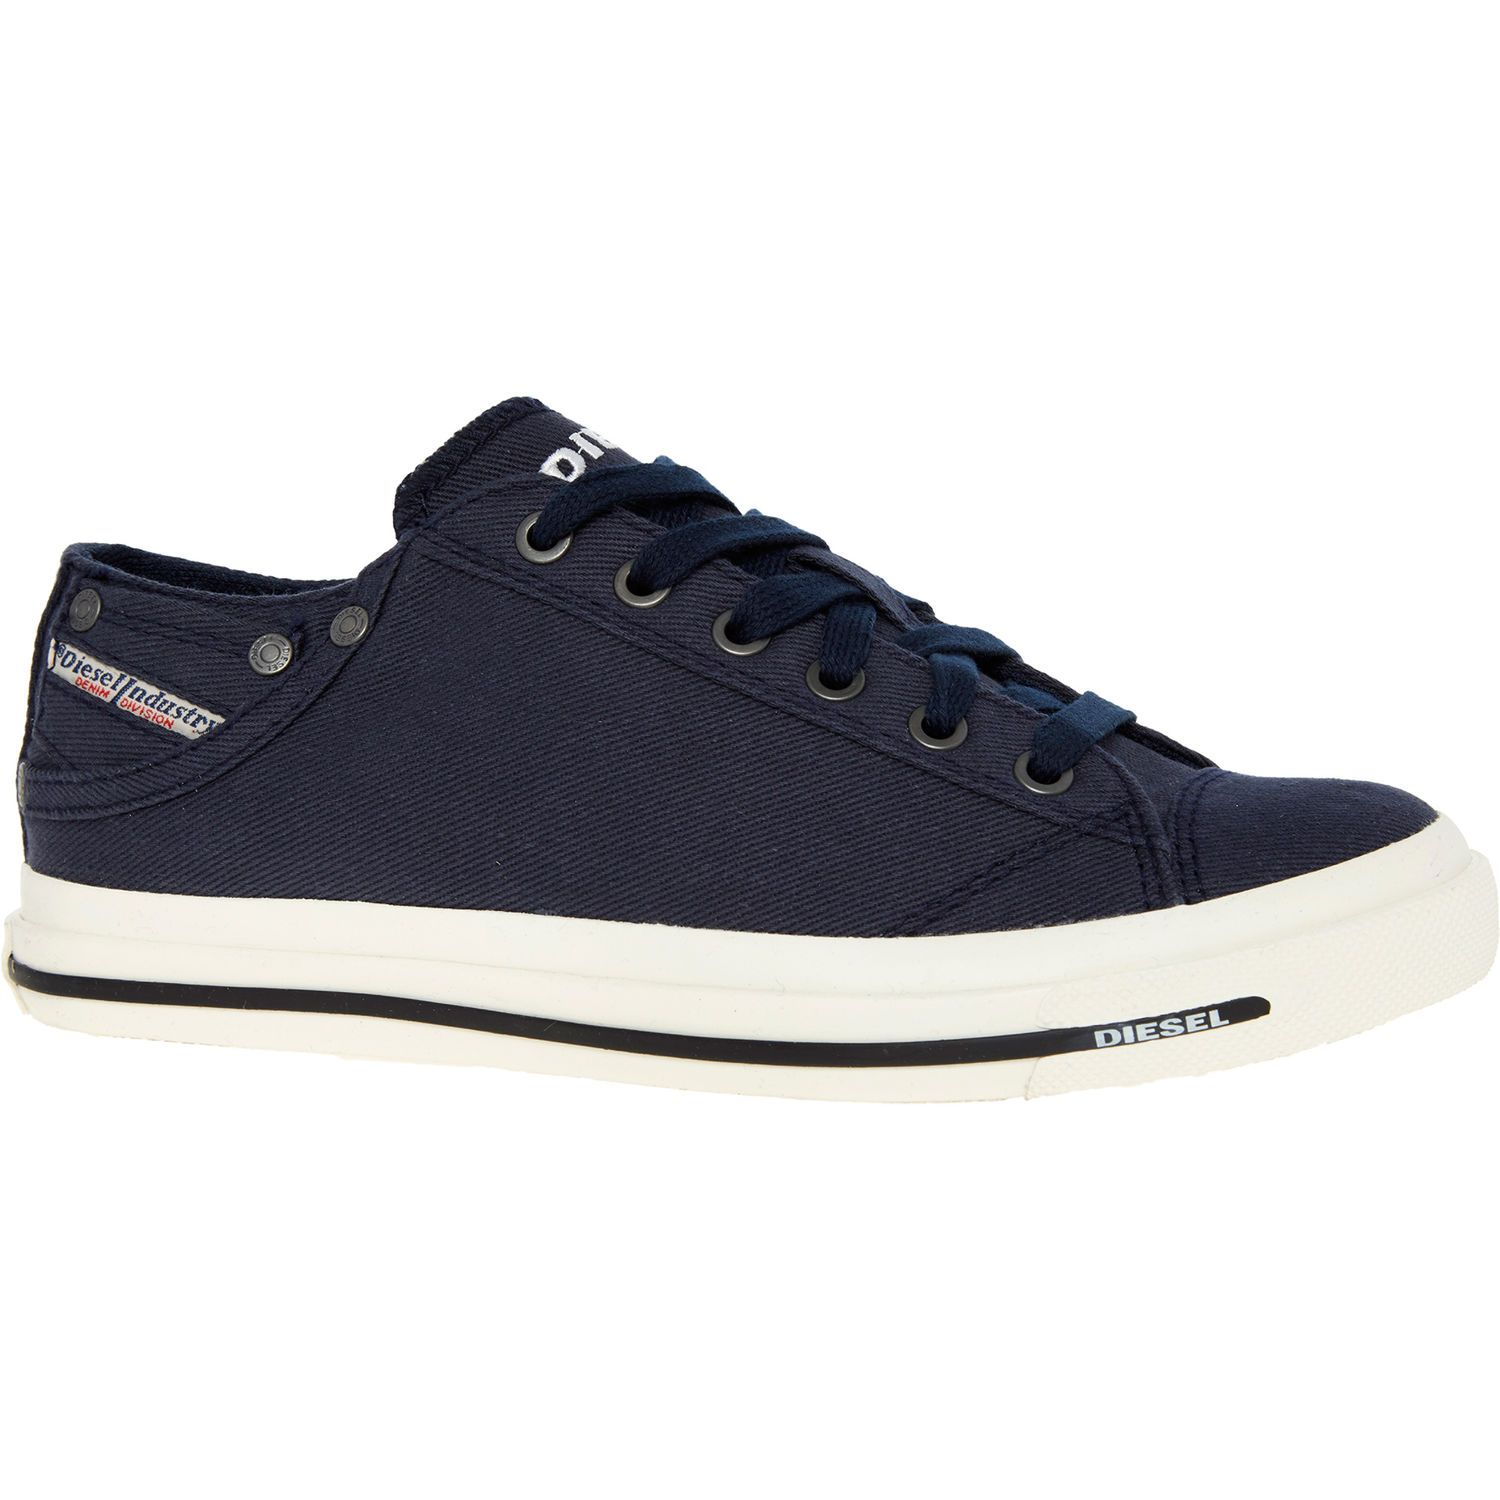 Navy Canvas Trainers - Trainers - Shoes